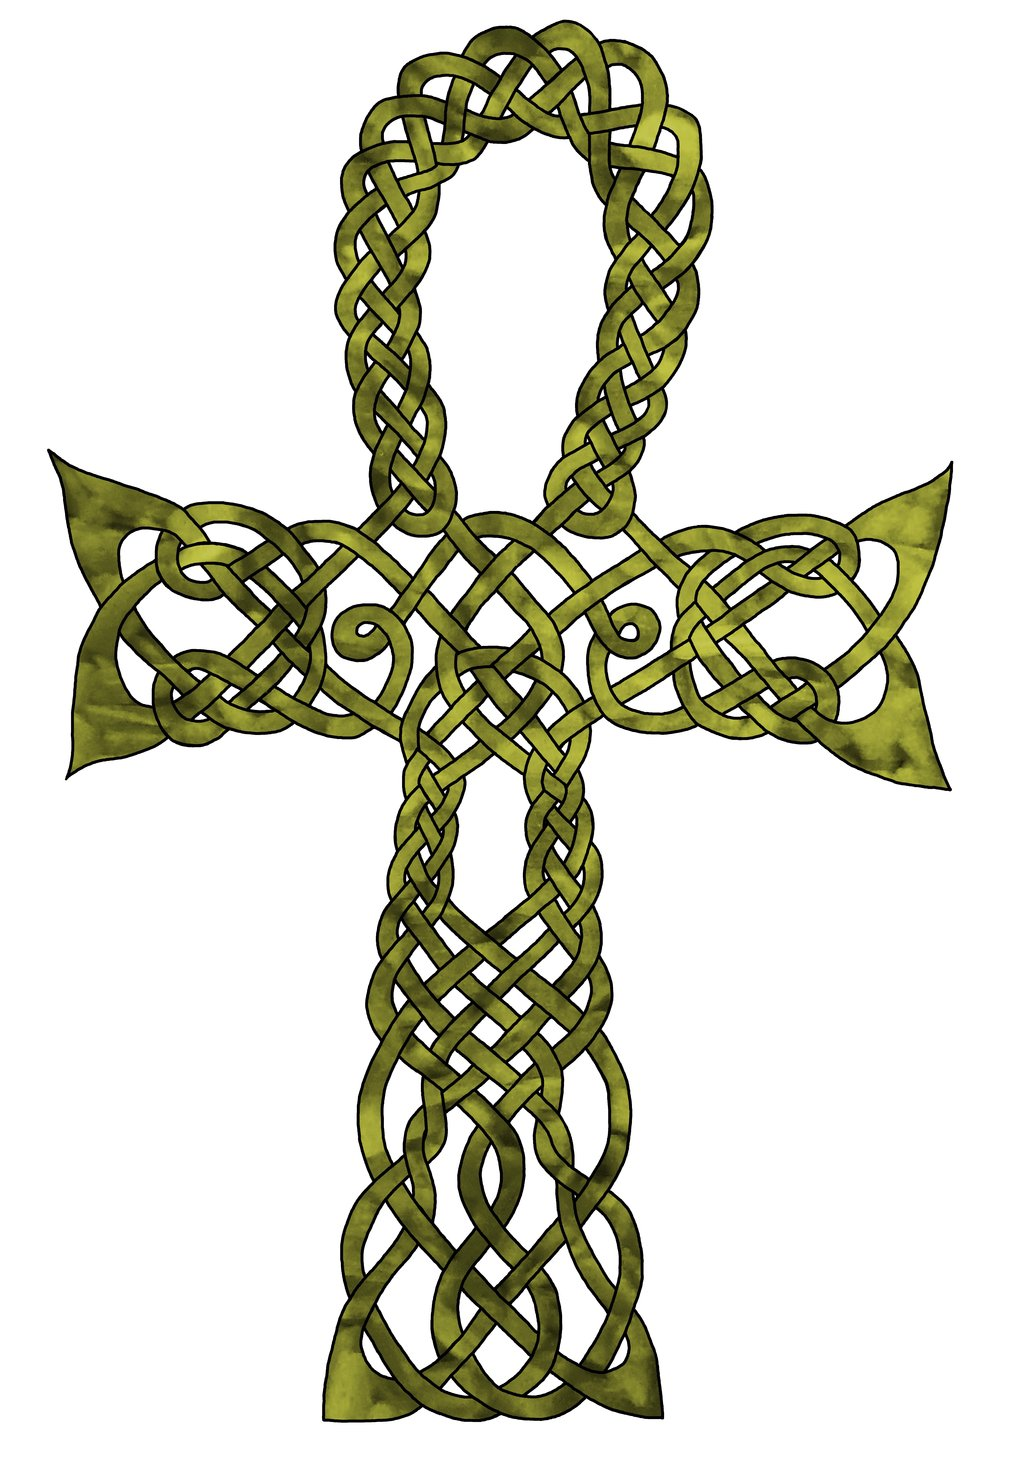 Ankh clipart celtic Ankh Meaning Gallery by Celtic